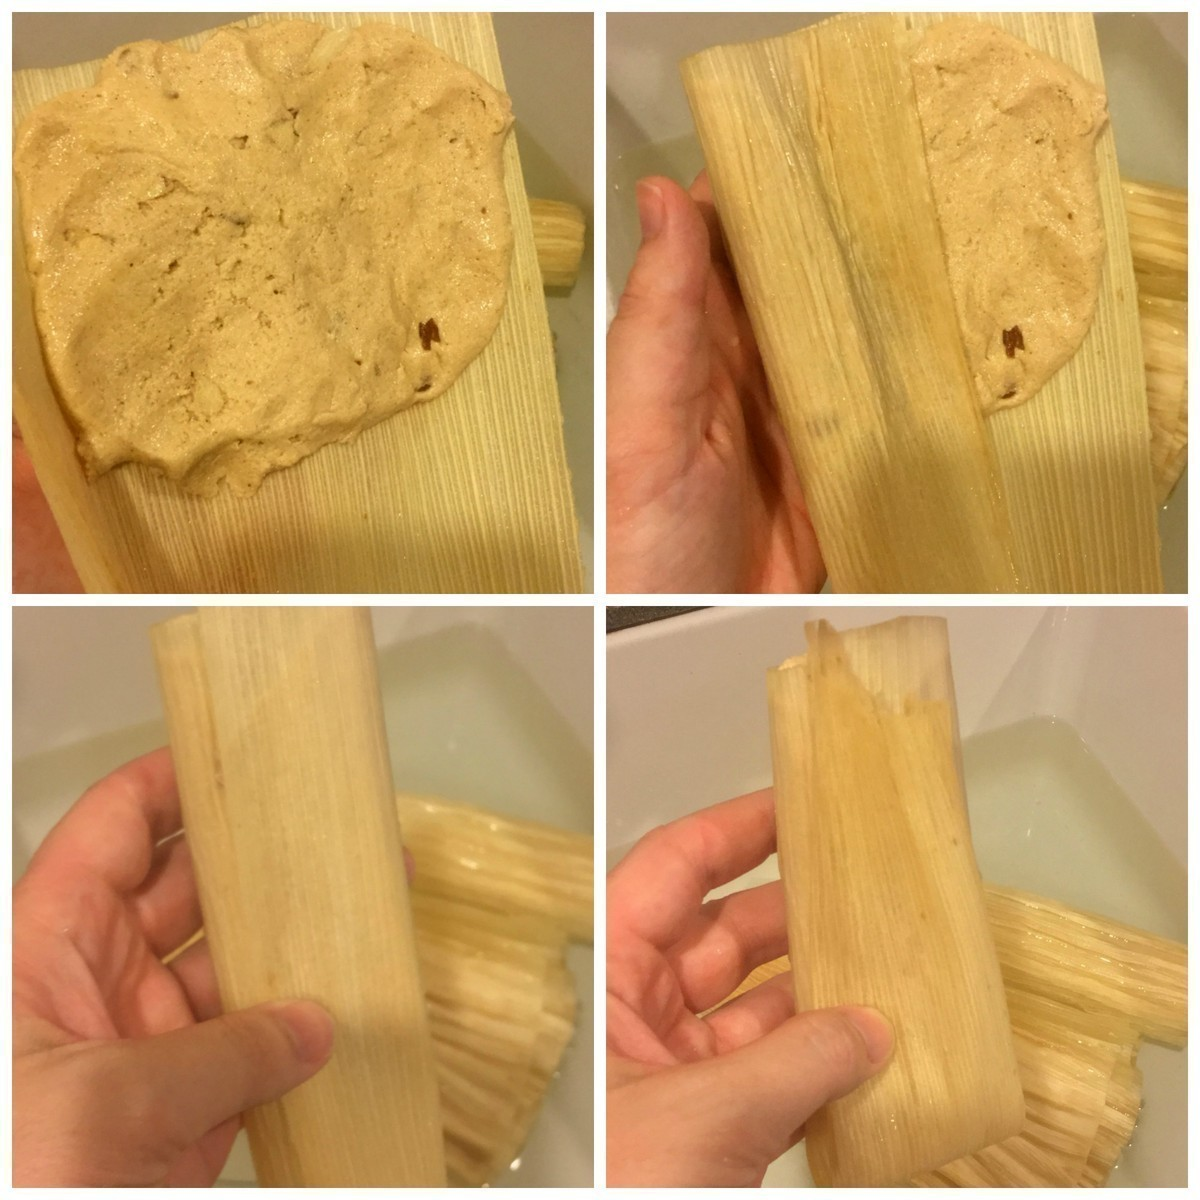 A change from traditional Mexican tamales, sweet tamales with cajeta combine brown sugar, cinnamon, and almonds or walnuts cooked in the Instant Pot and drizzled with cajeta and sprinkled with additional almonds.